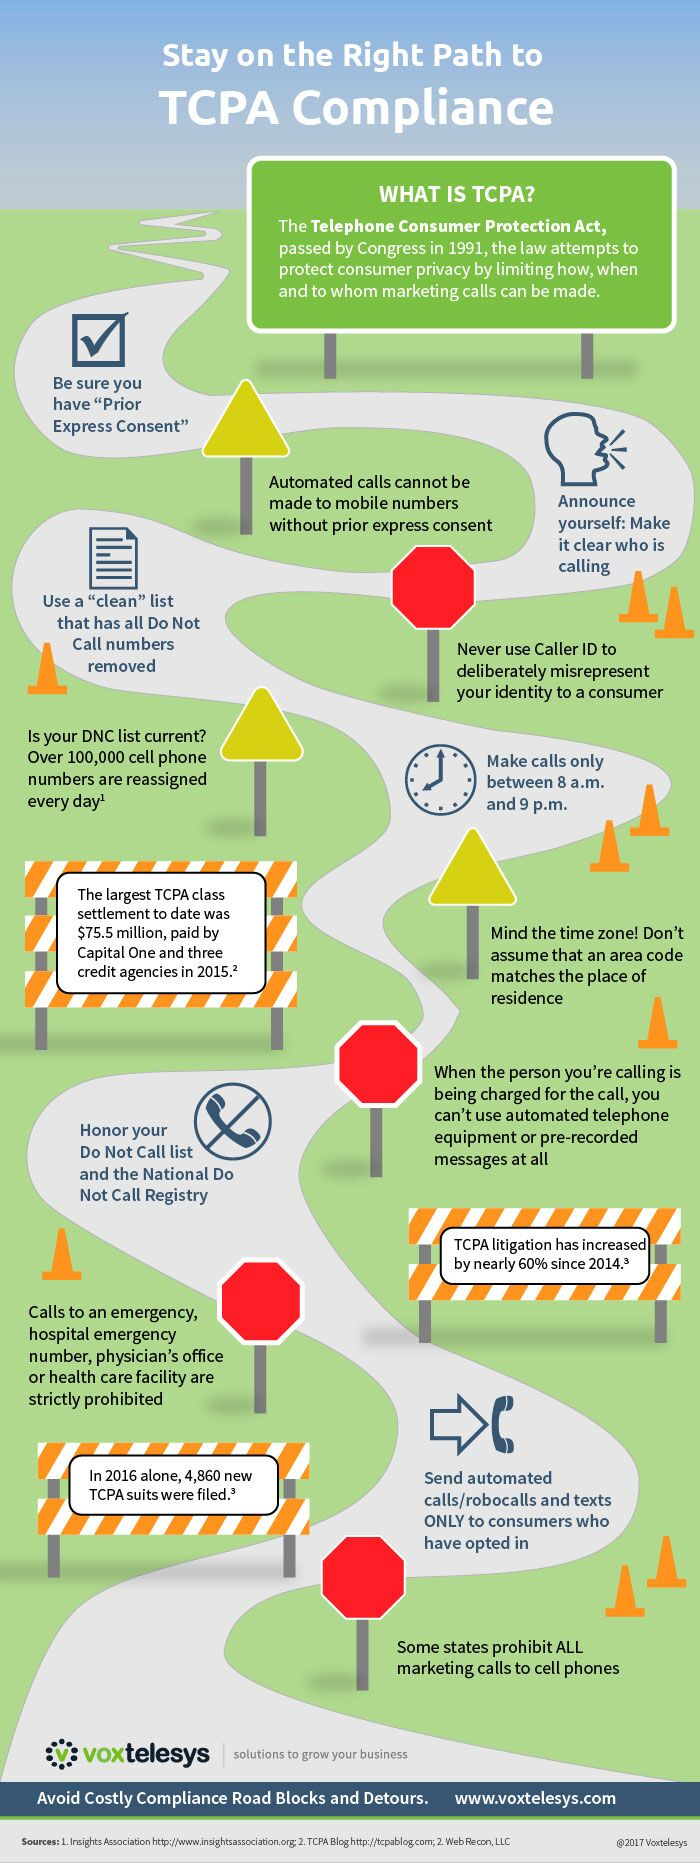 Stay on the Right Path to TCPA Compliance